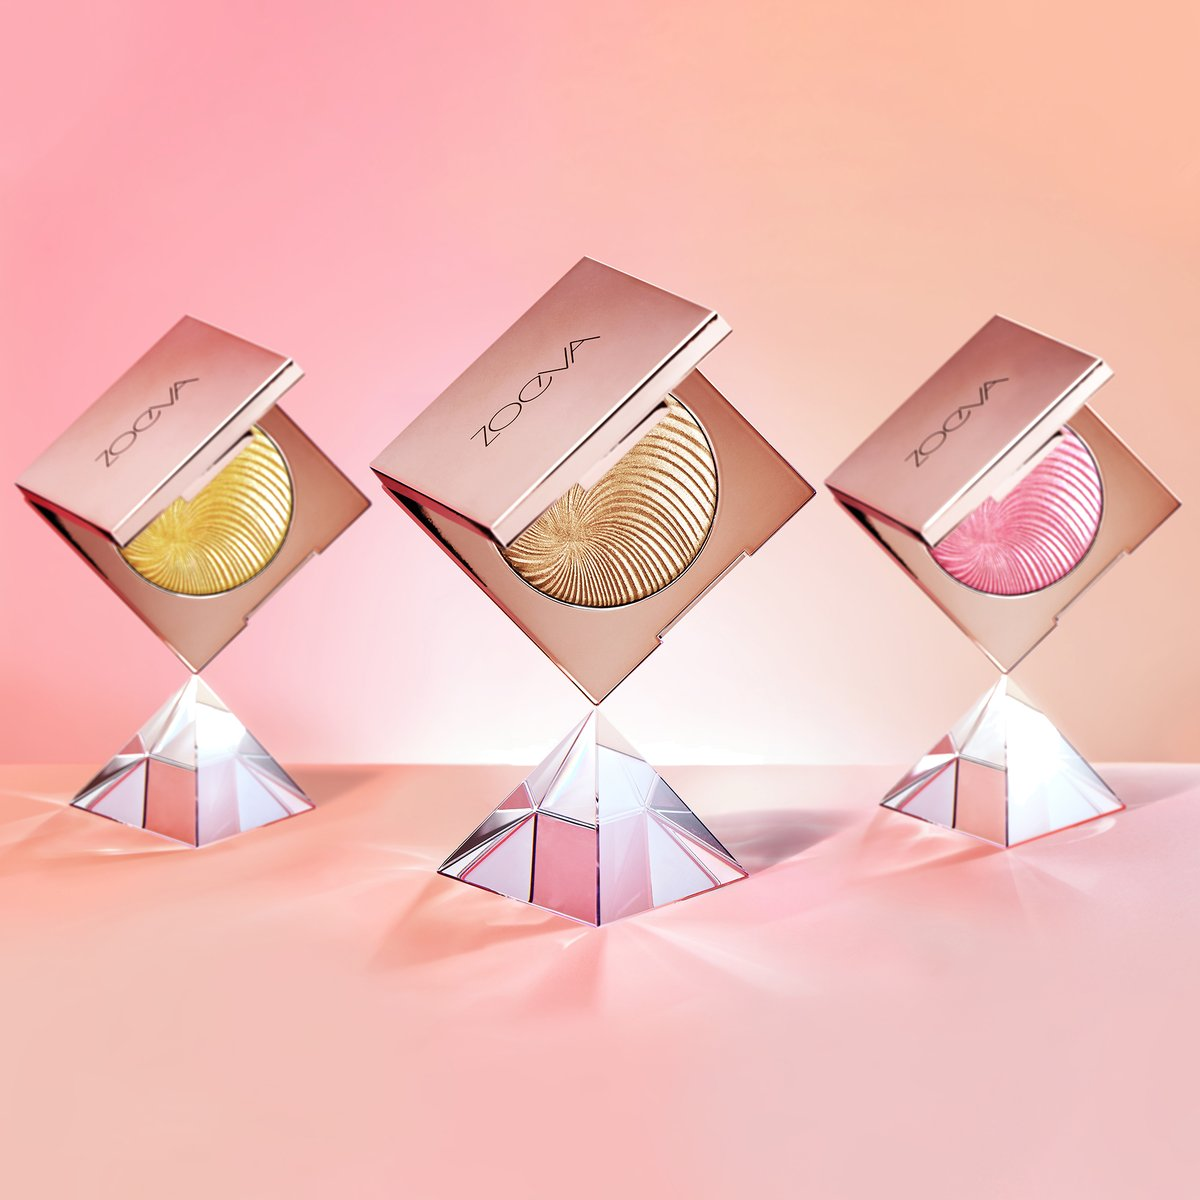 Zoeva Cosmetics On Twitter Get Glowing Our Visionary Light Multi Use Face Powder Empowers You To Define Your Own Glow Https T Co Mxczfoi8bh Zoeva Zoevavisionarylight Glow Instamakeup Highlighter Glam Makeupoftheday Makeuplover Https